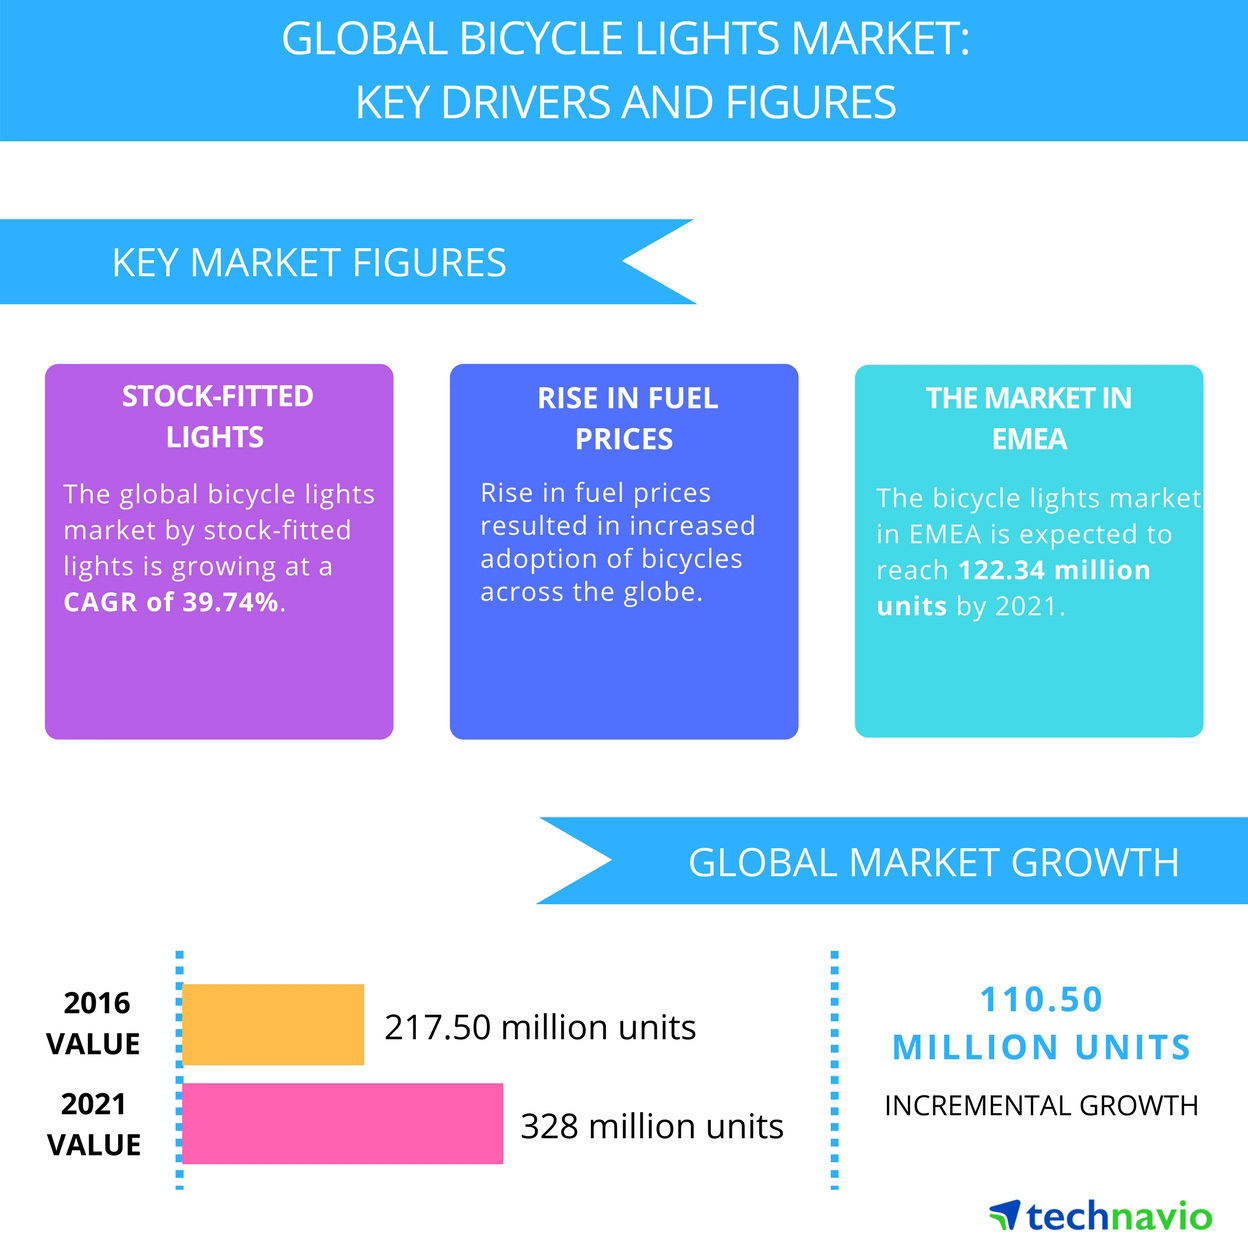 Technavio has published a new report on the global bicycle lights market from 2017-2021. (Graphic: Business Wire)